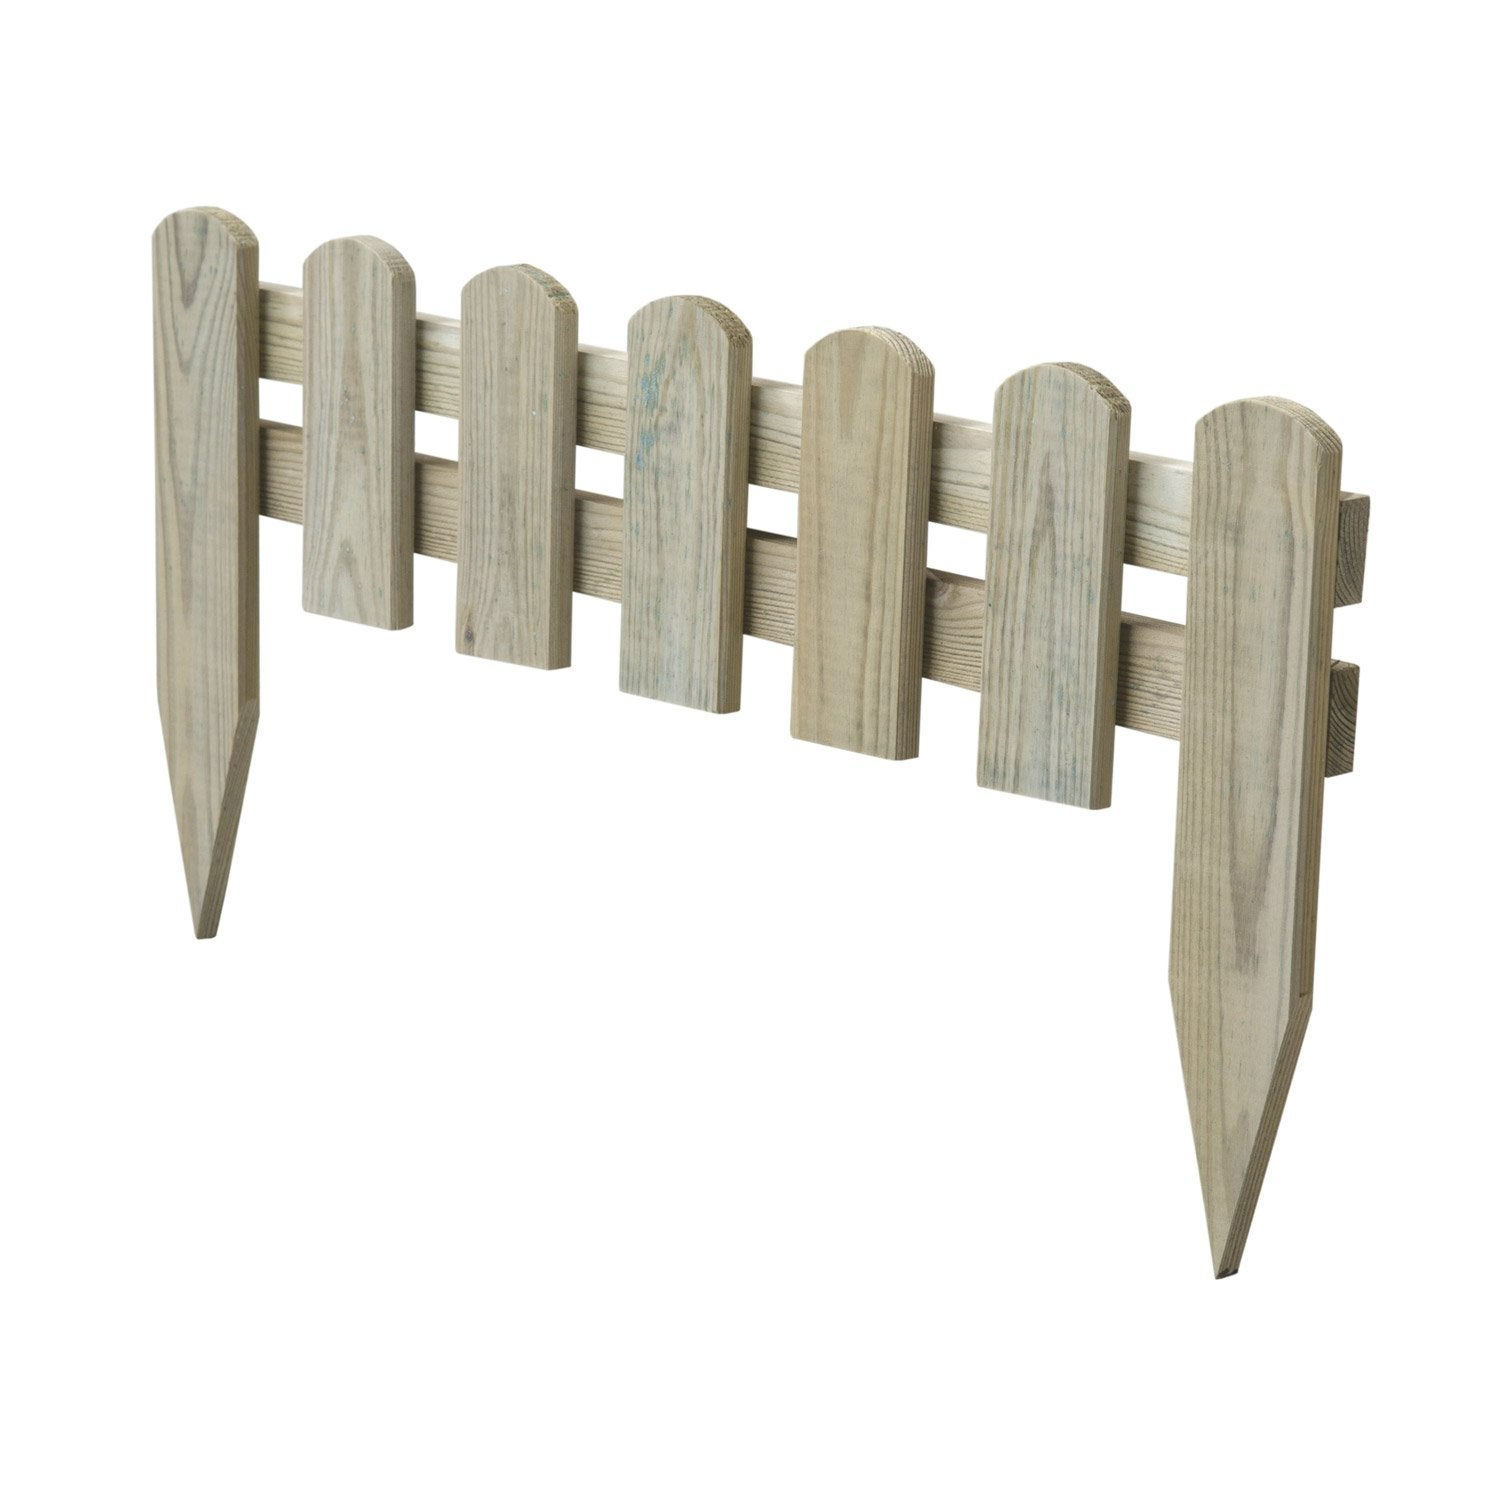 Bordure planter stackette bois naturel x cm leroy merlin for Barriere de jardin bois